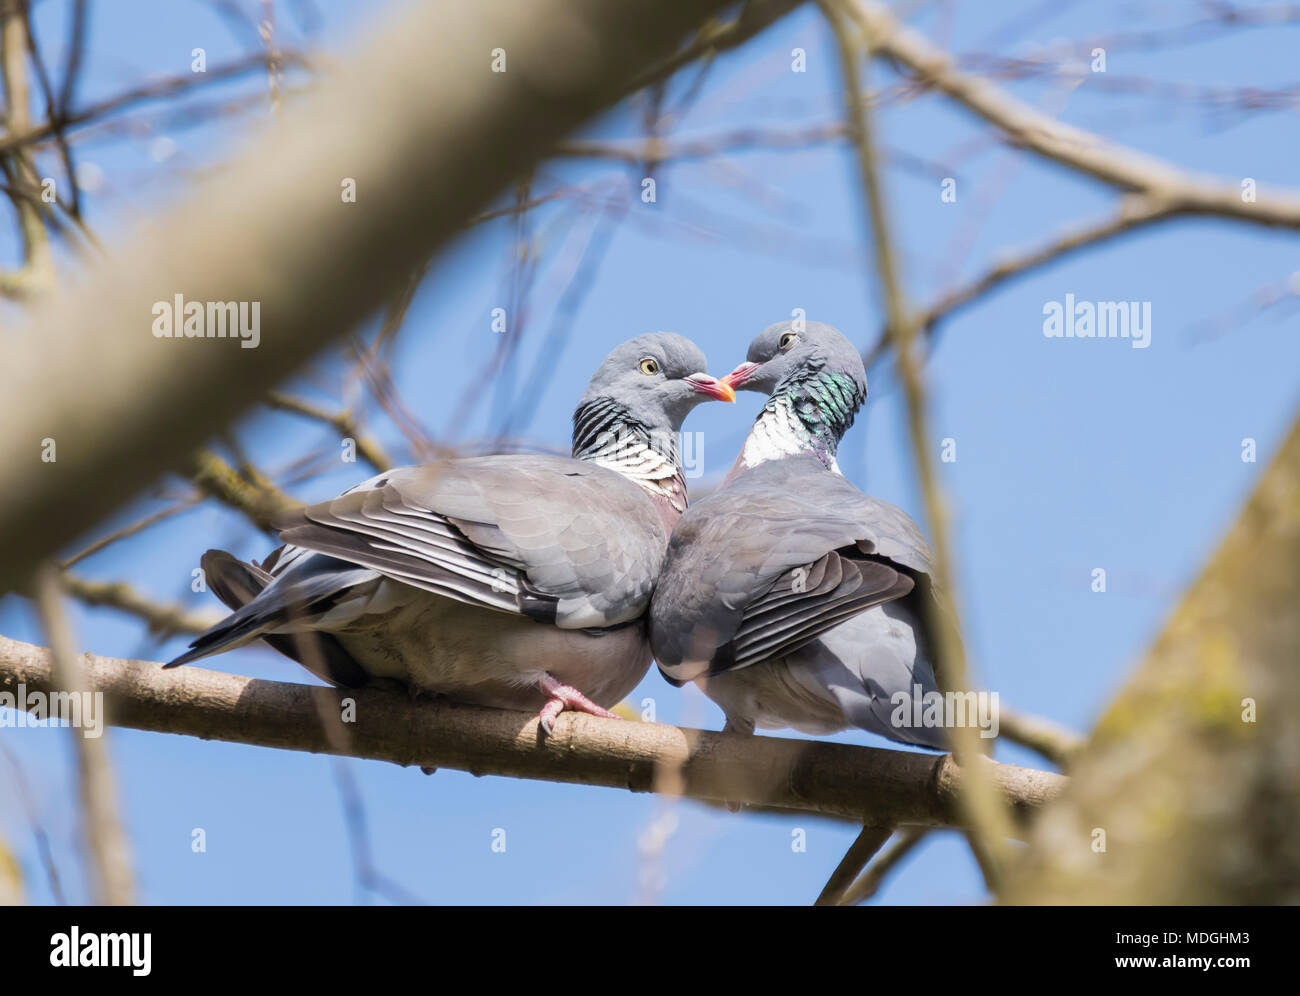 Pair of Common Wood Pigeons (Columba palumbus) courting while perched on a branch in Spring in West Sussex, UK. Couple of pigeons kissing in a tree. - Stock Image